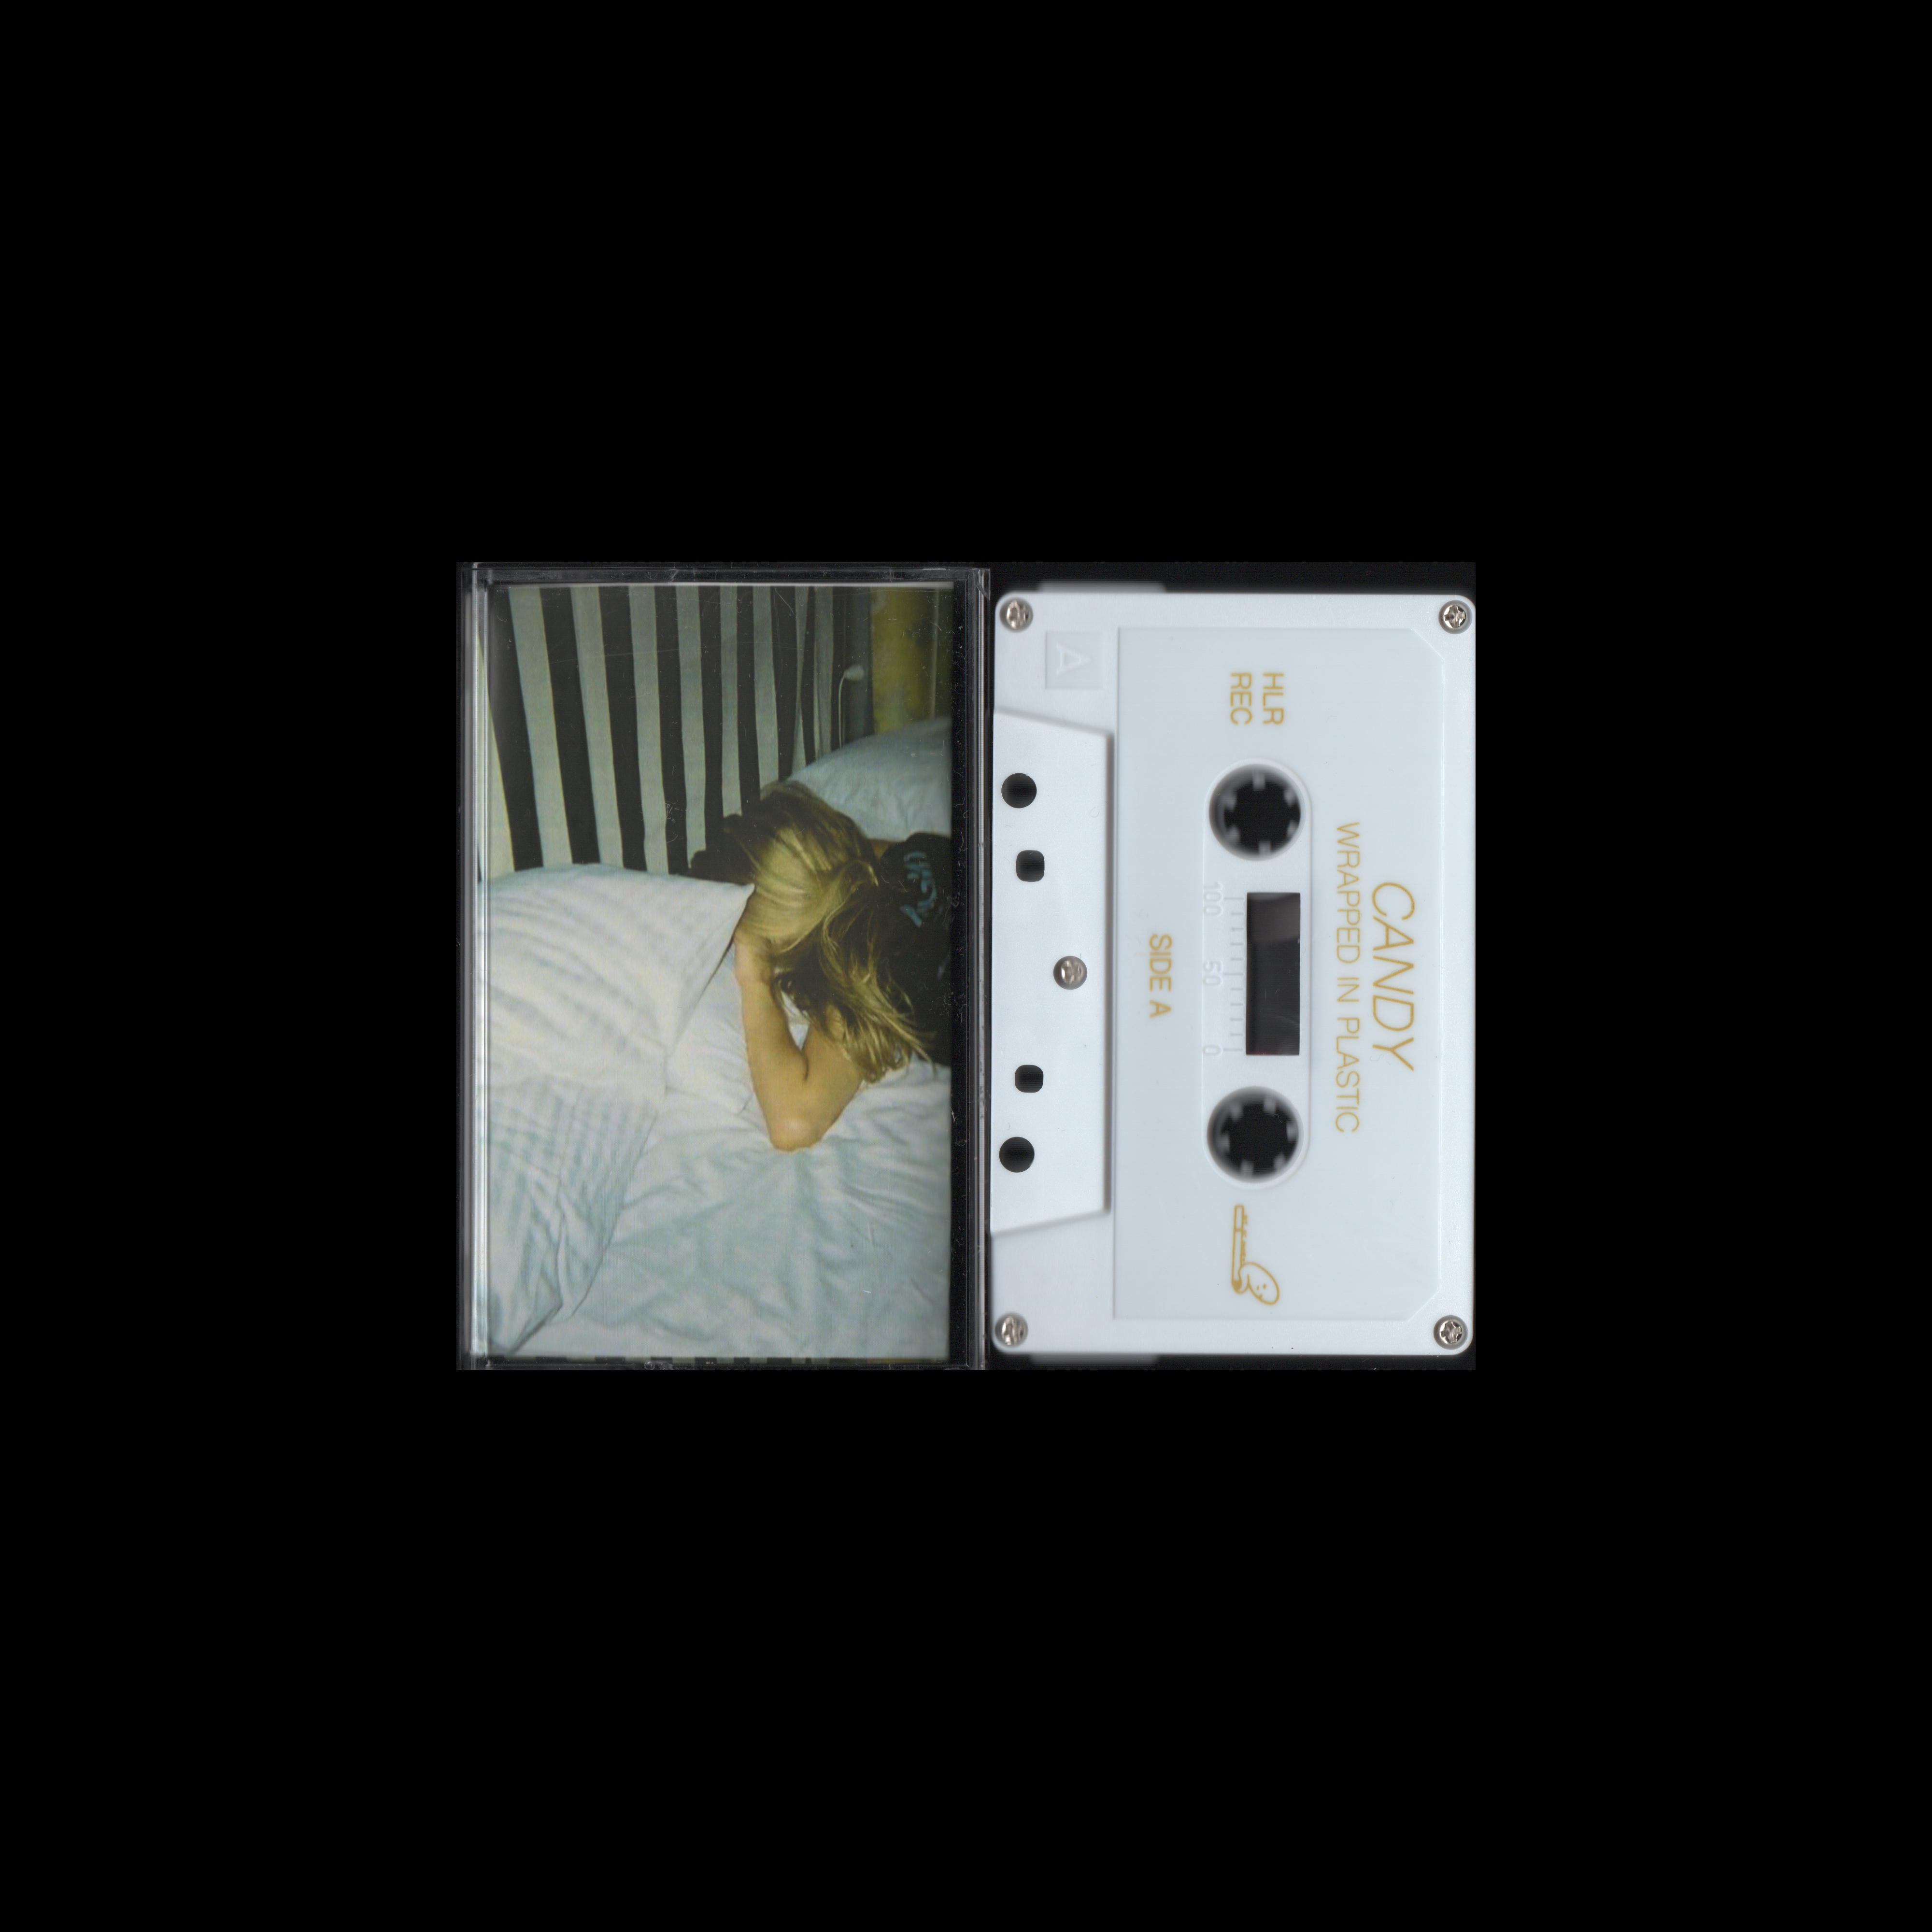 [Sold Out] Candy - Wrapped in Plastic (Out Of Breath Records / Hellur Records)